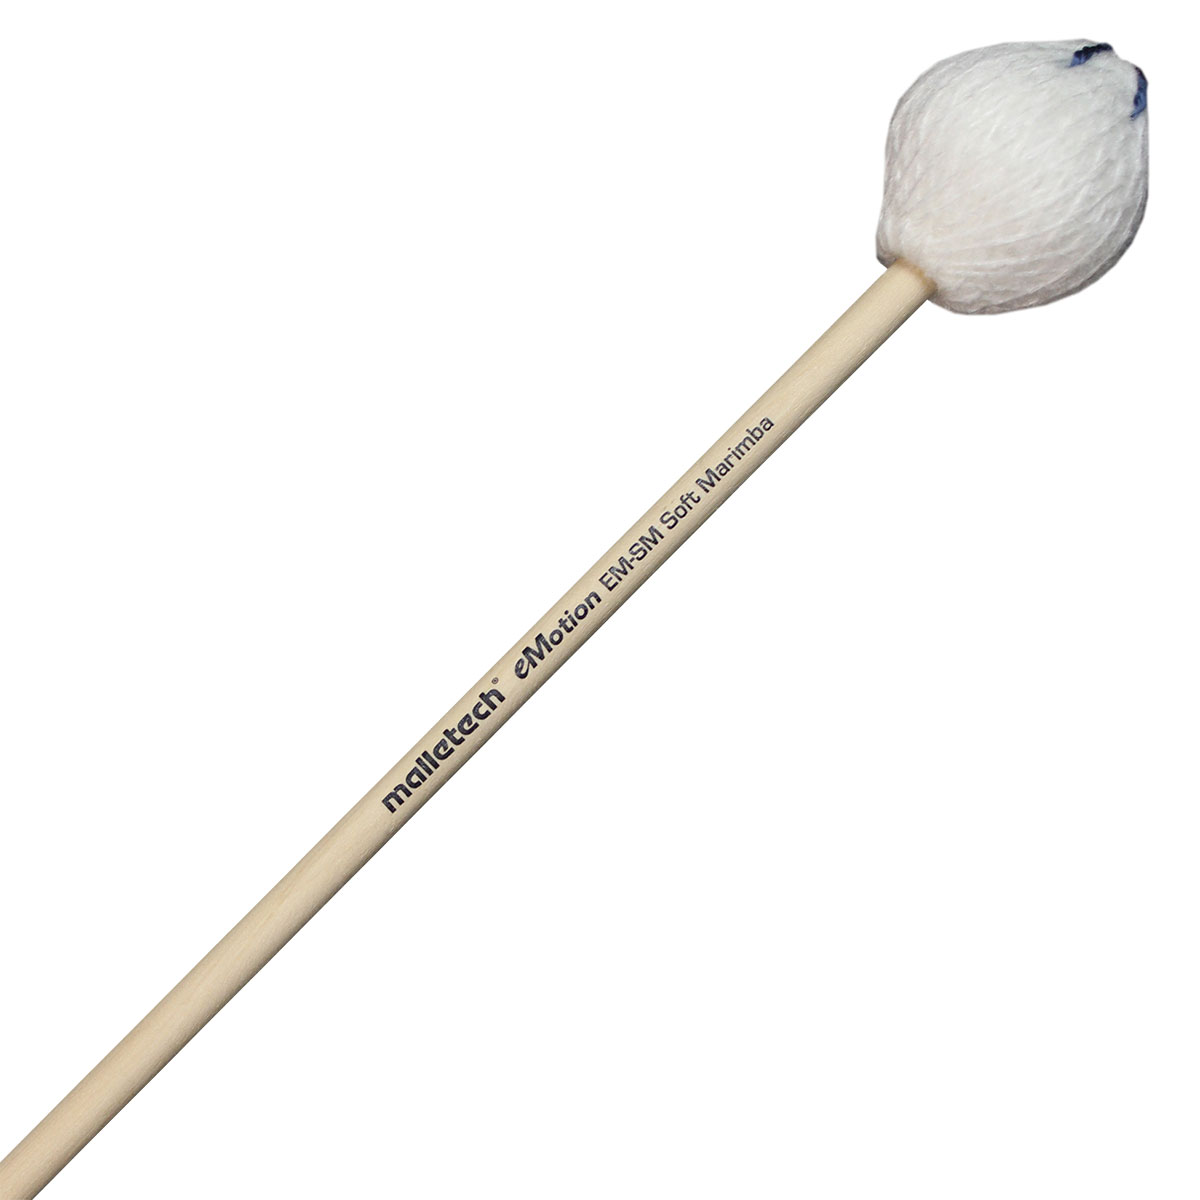 Malletech eMotion Series Soft Marimba Mallets